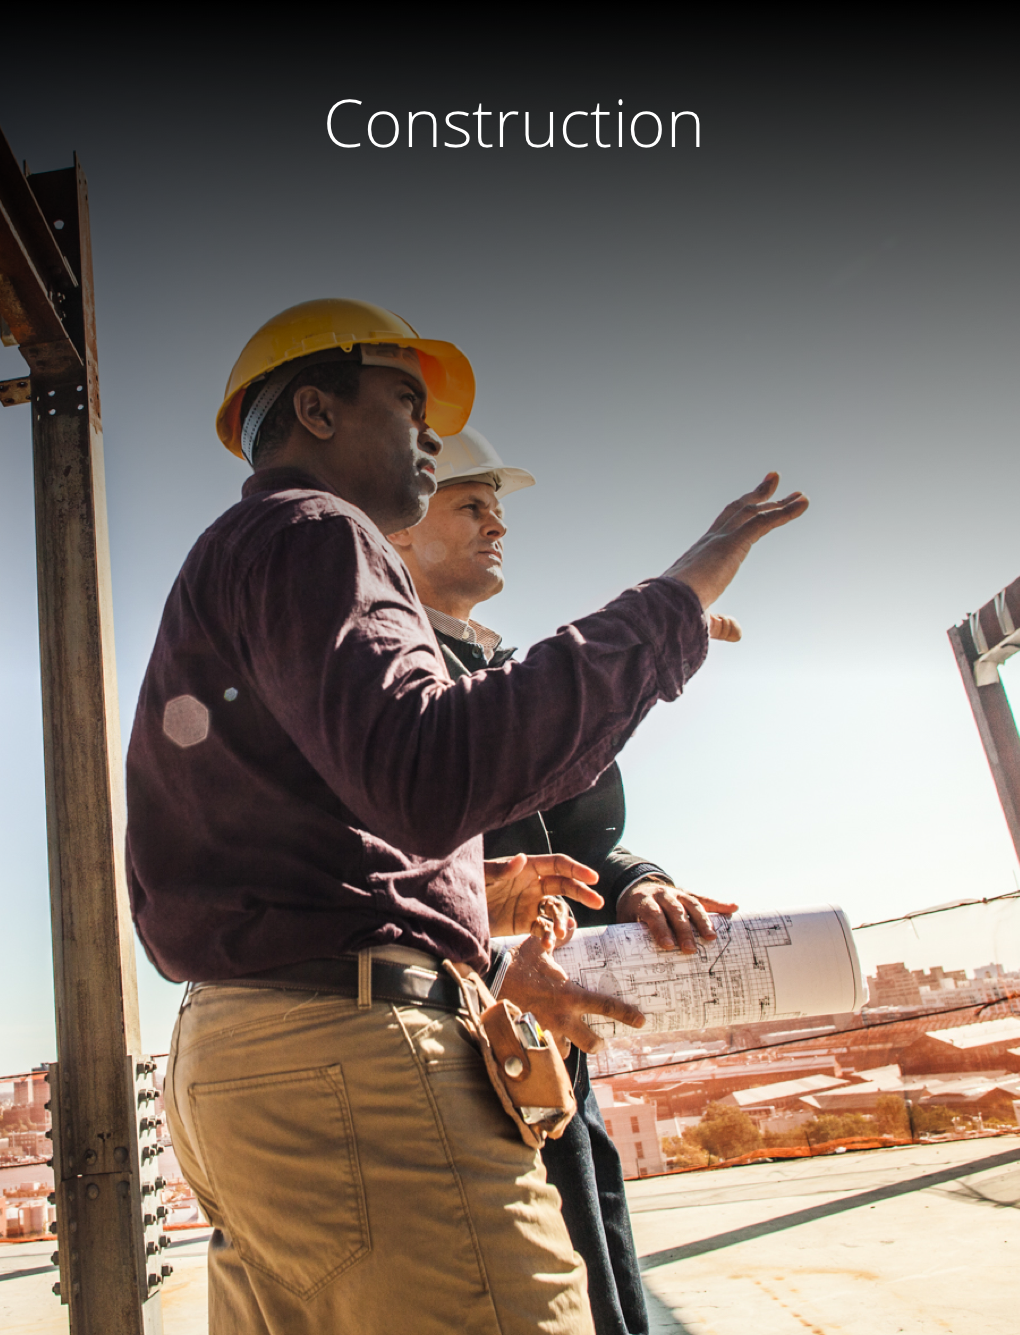 AEC enterprises are turning to Remote Assistance to enable Project Managers to complete live site inspections remotely via their workforce's boots on the ground and later referencing captured sessions for progress tracking throughout the lifecycle of a project.